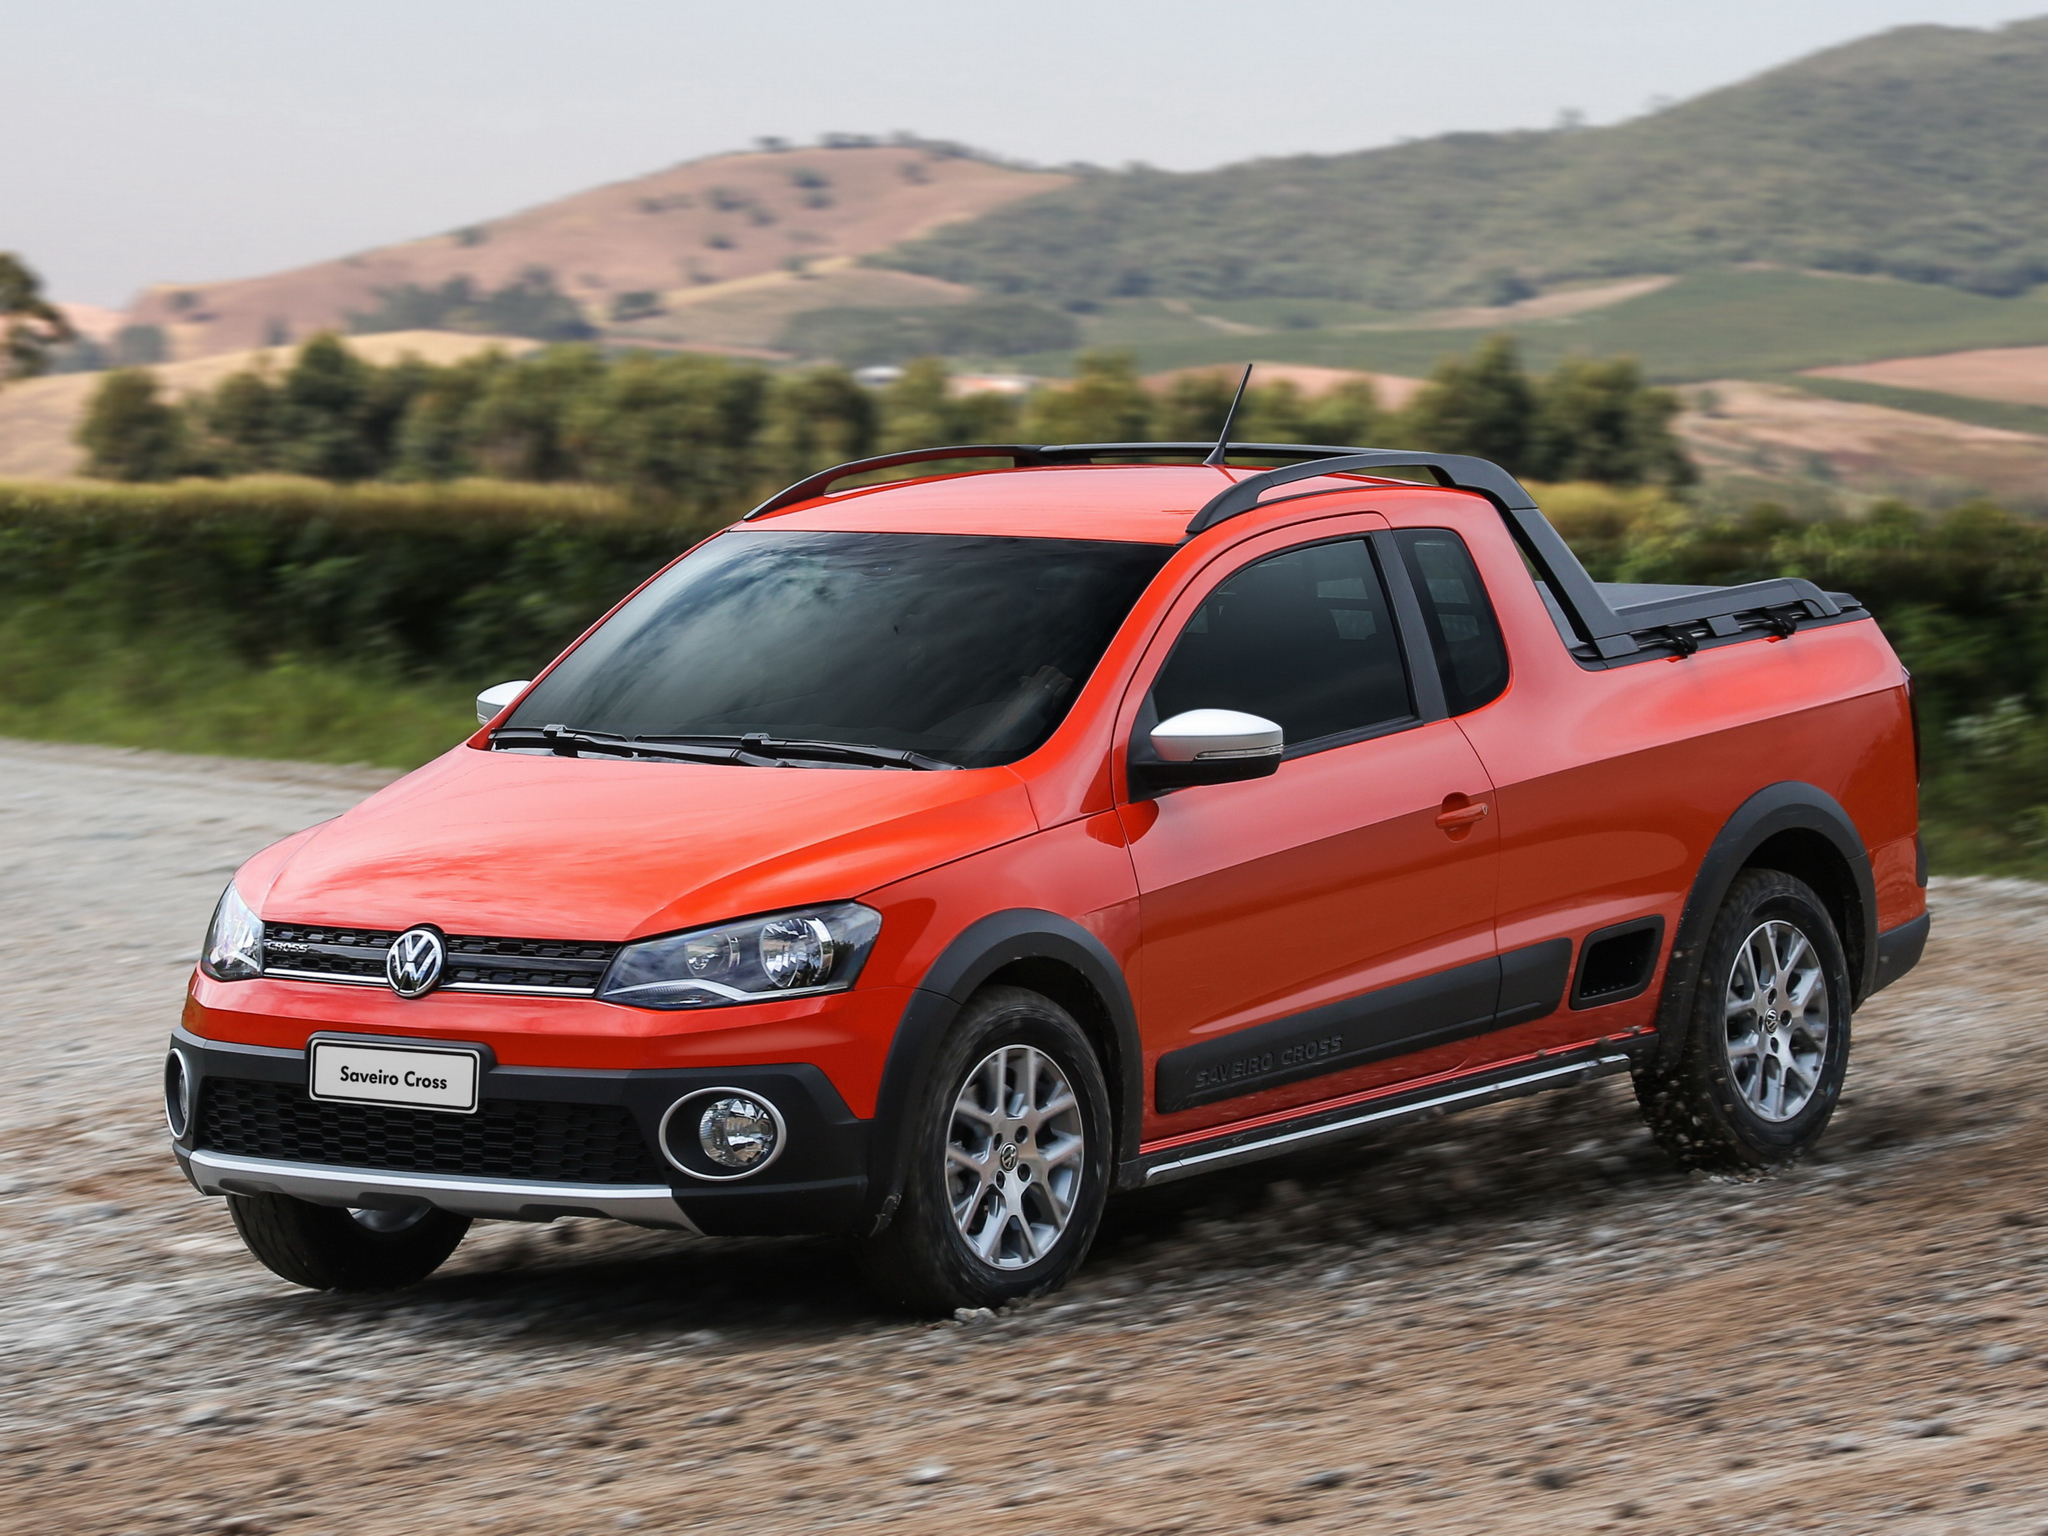 2014 volkswagen saveiro cross is a funky brazilian pickup video autoevolution